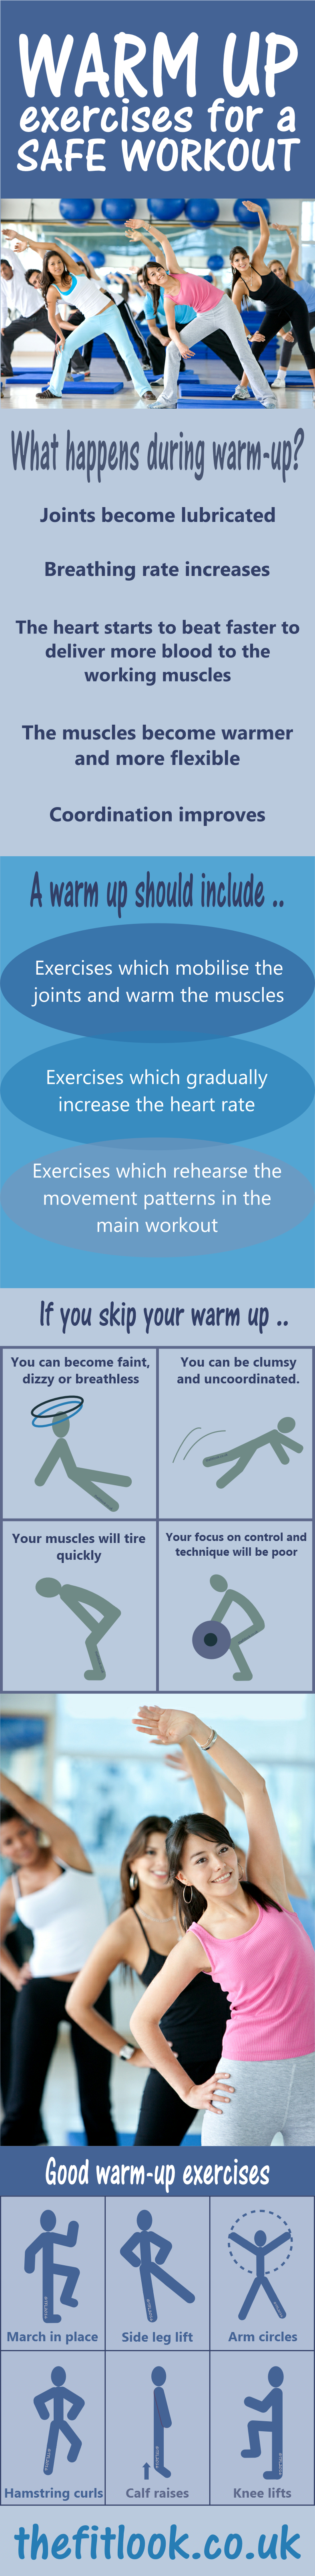 Warm up exercises what you need to know for safety exercise meta warm up exercises may seem like a waste of time but a few minutes warming up makes a big difference to your workout exercise chart and infographic geenschuldenfo Images